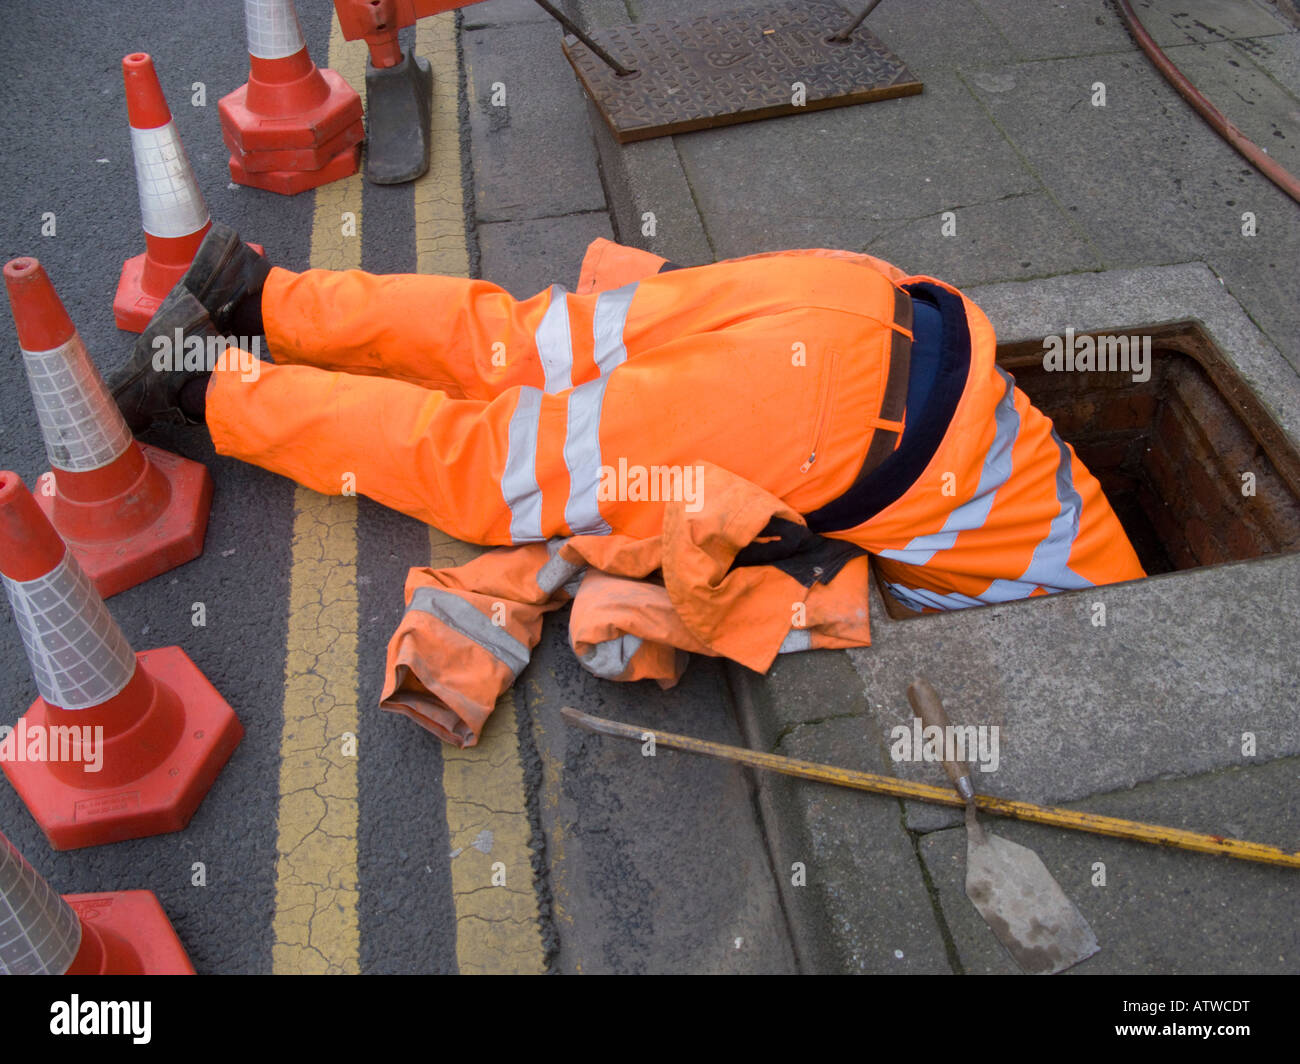 Dyno Rod worker wearing orange overalls  head first down a drain inspection chamber manhole looking for a blockage Stock Photo